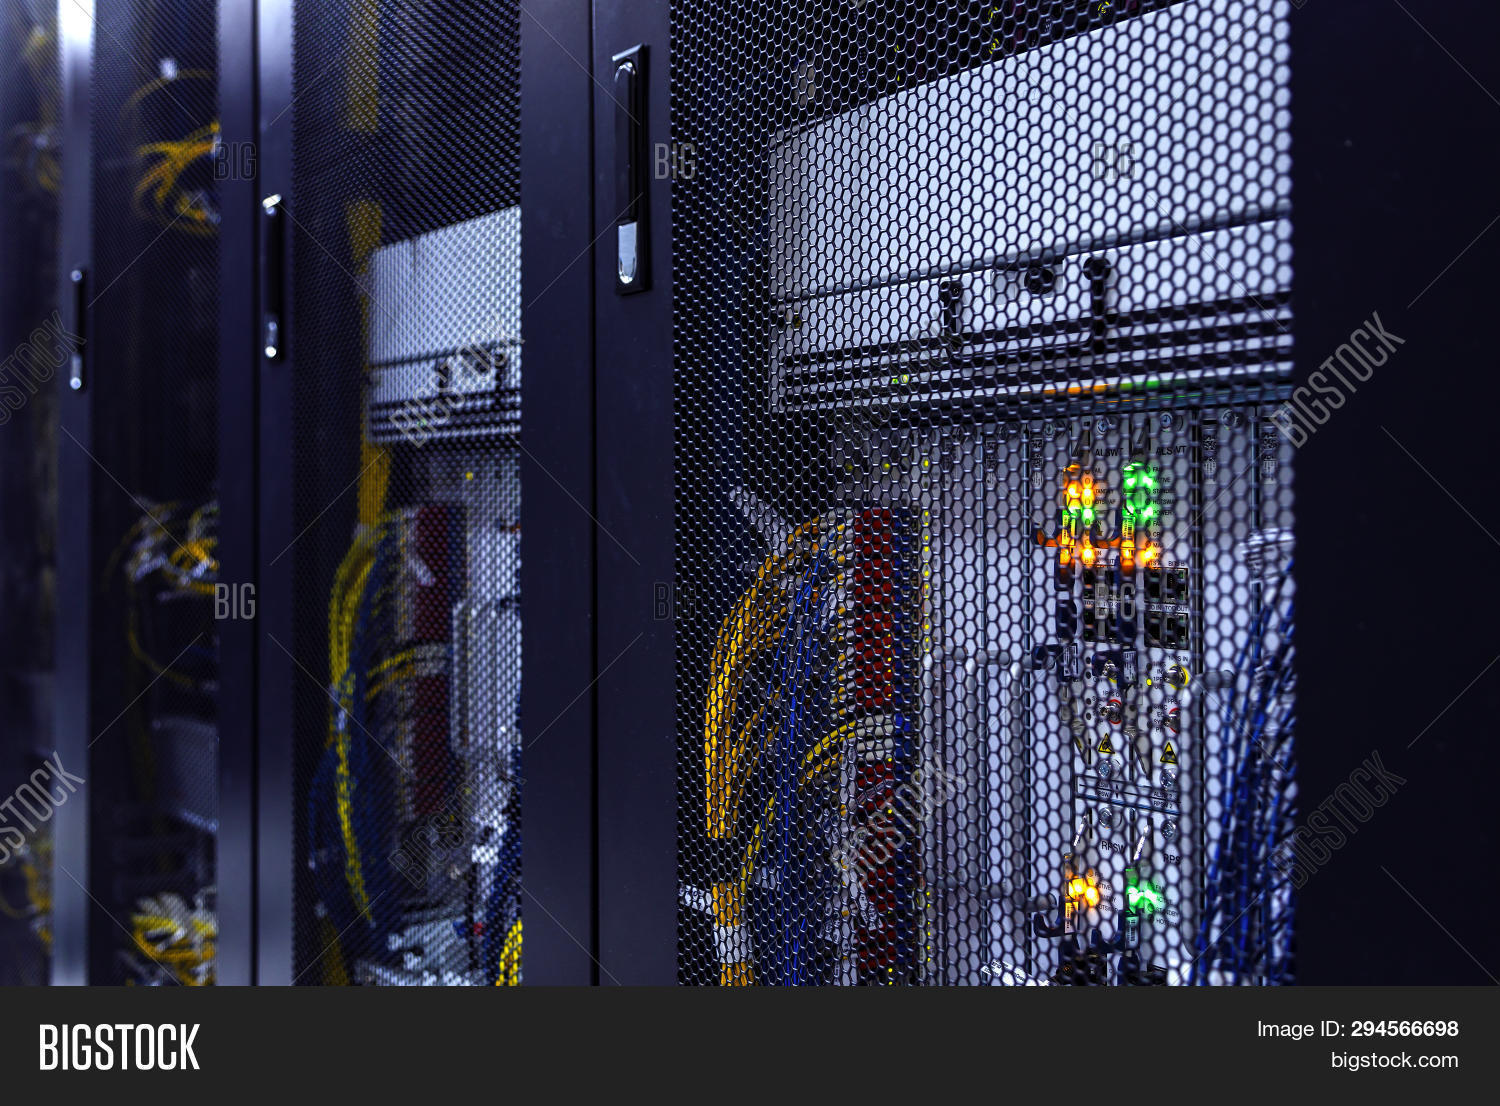 abstract,analysis,analytics,backbone,background,black,blade,center,cloud,cluster,communication,computer,core,data,database,display,door,engineer,equipment,farm,hardware,high,indicator,industry,information,inside,interiorserver,internet,led,lock,mainframe,meshed,modern,network,networking,rack,room,security,server,service,shelf,storage,supercomputer,support,system,tech,technology,telecommunication,things,web